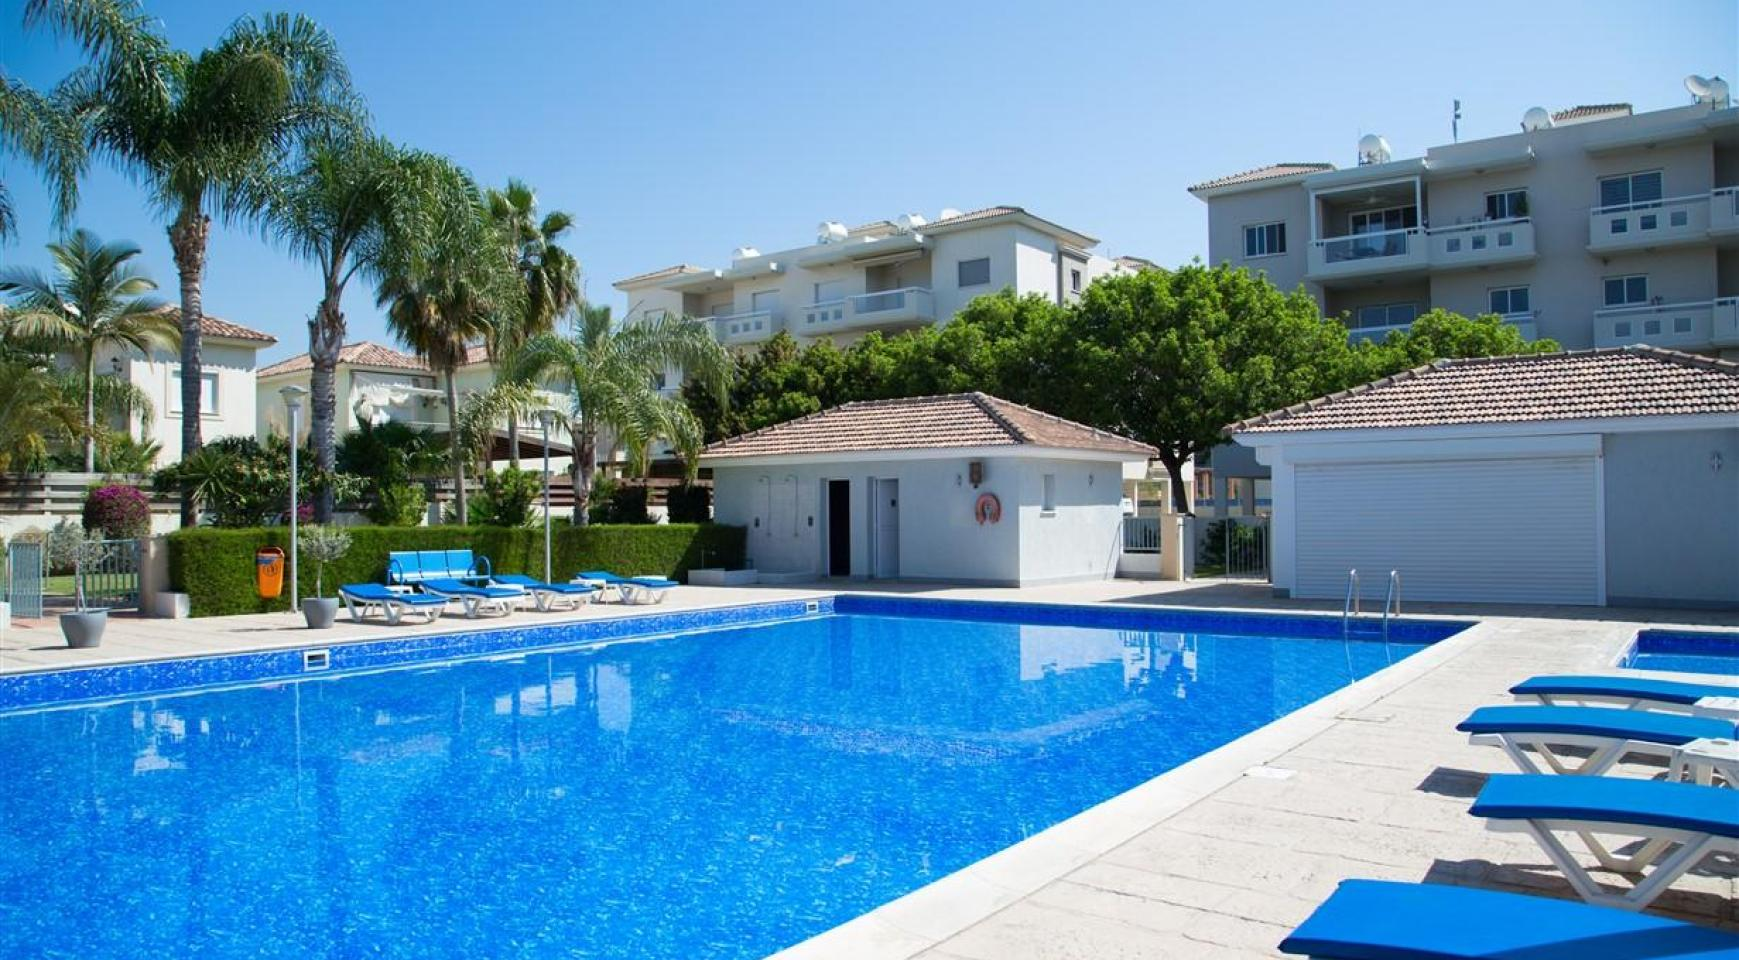 Luxury 2 Bedroom Apartment Mesogios Iris 304 in the Tourist area near the Beach - 30